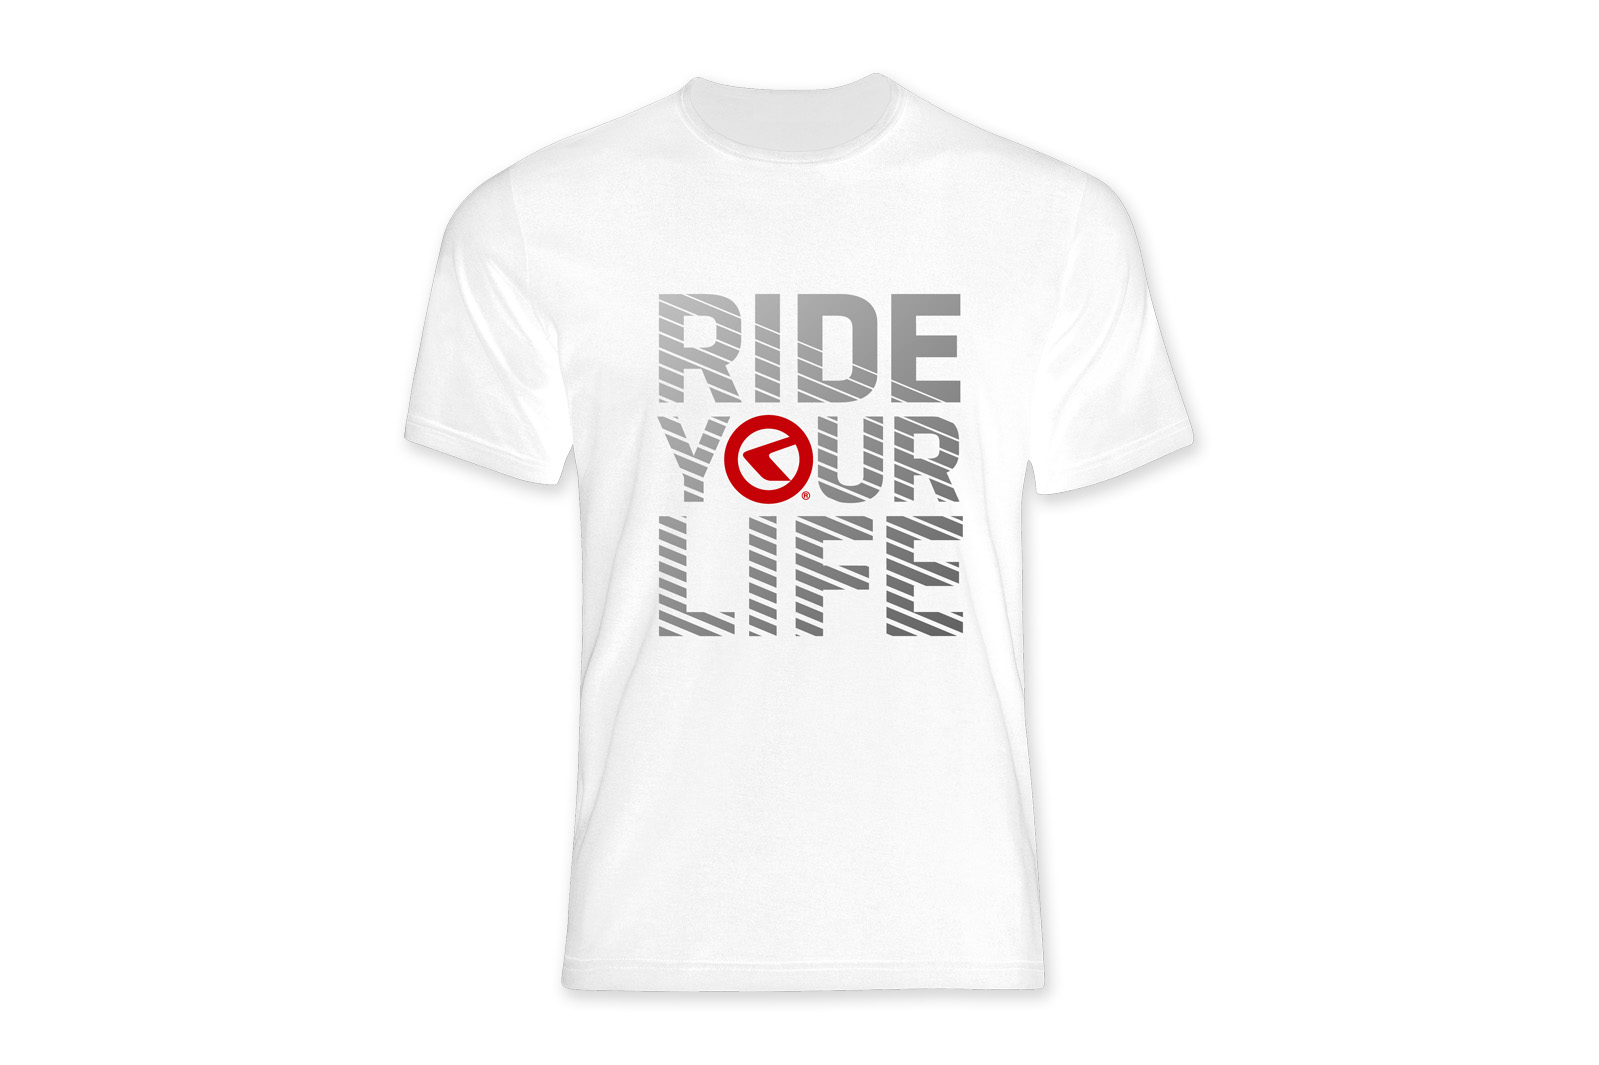 T-Shirt KELLYS RIDE YOUR LIFE kurzarm white - XL - Mega Handelsgesellschaft